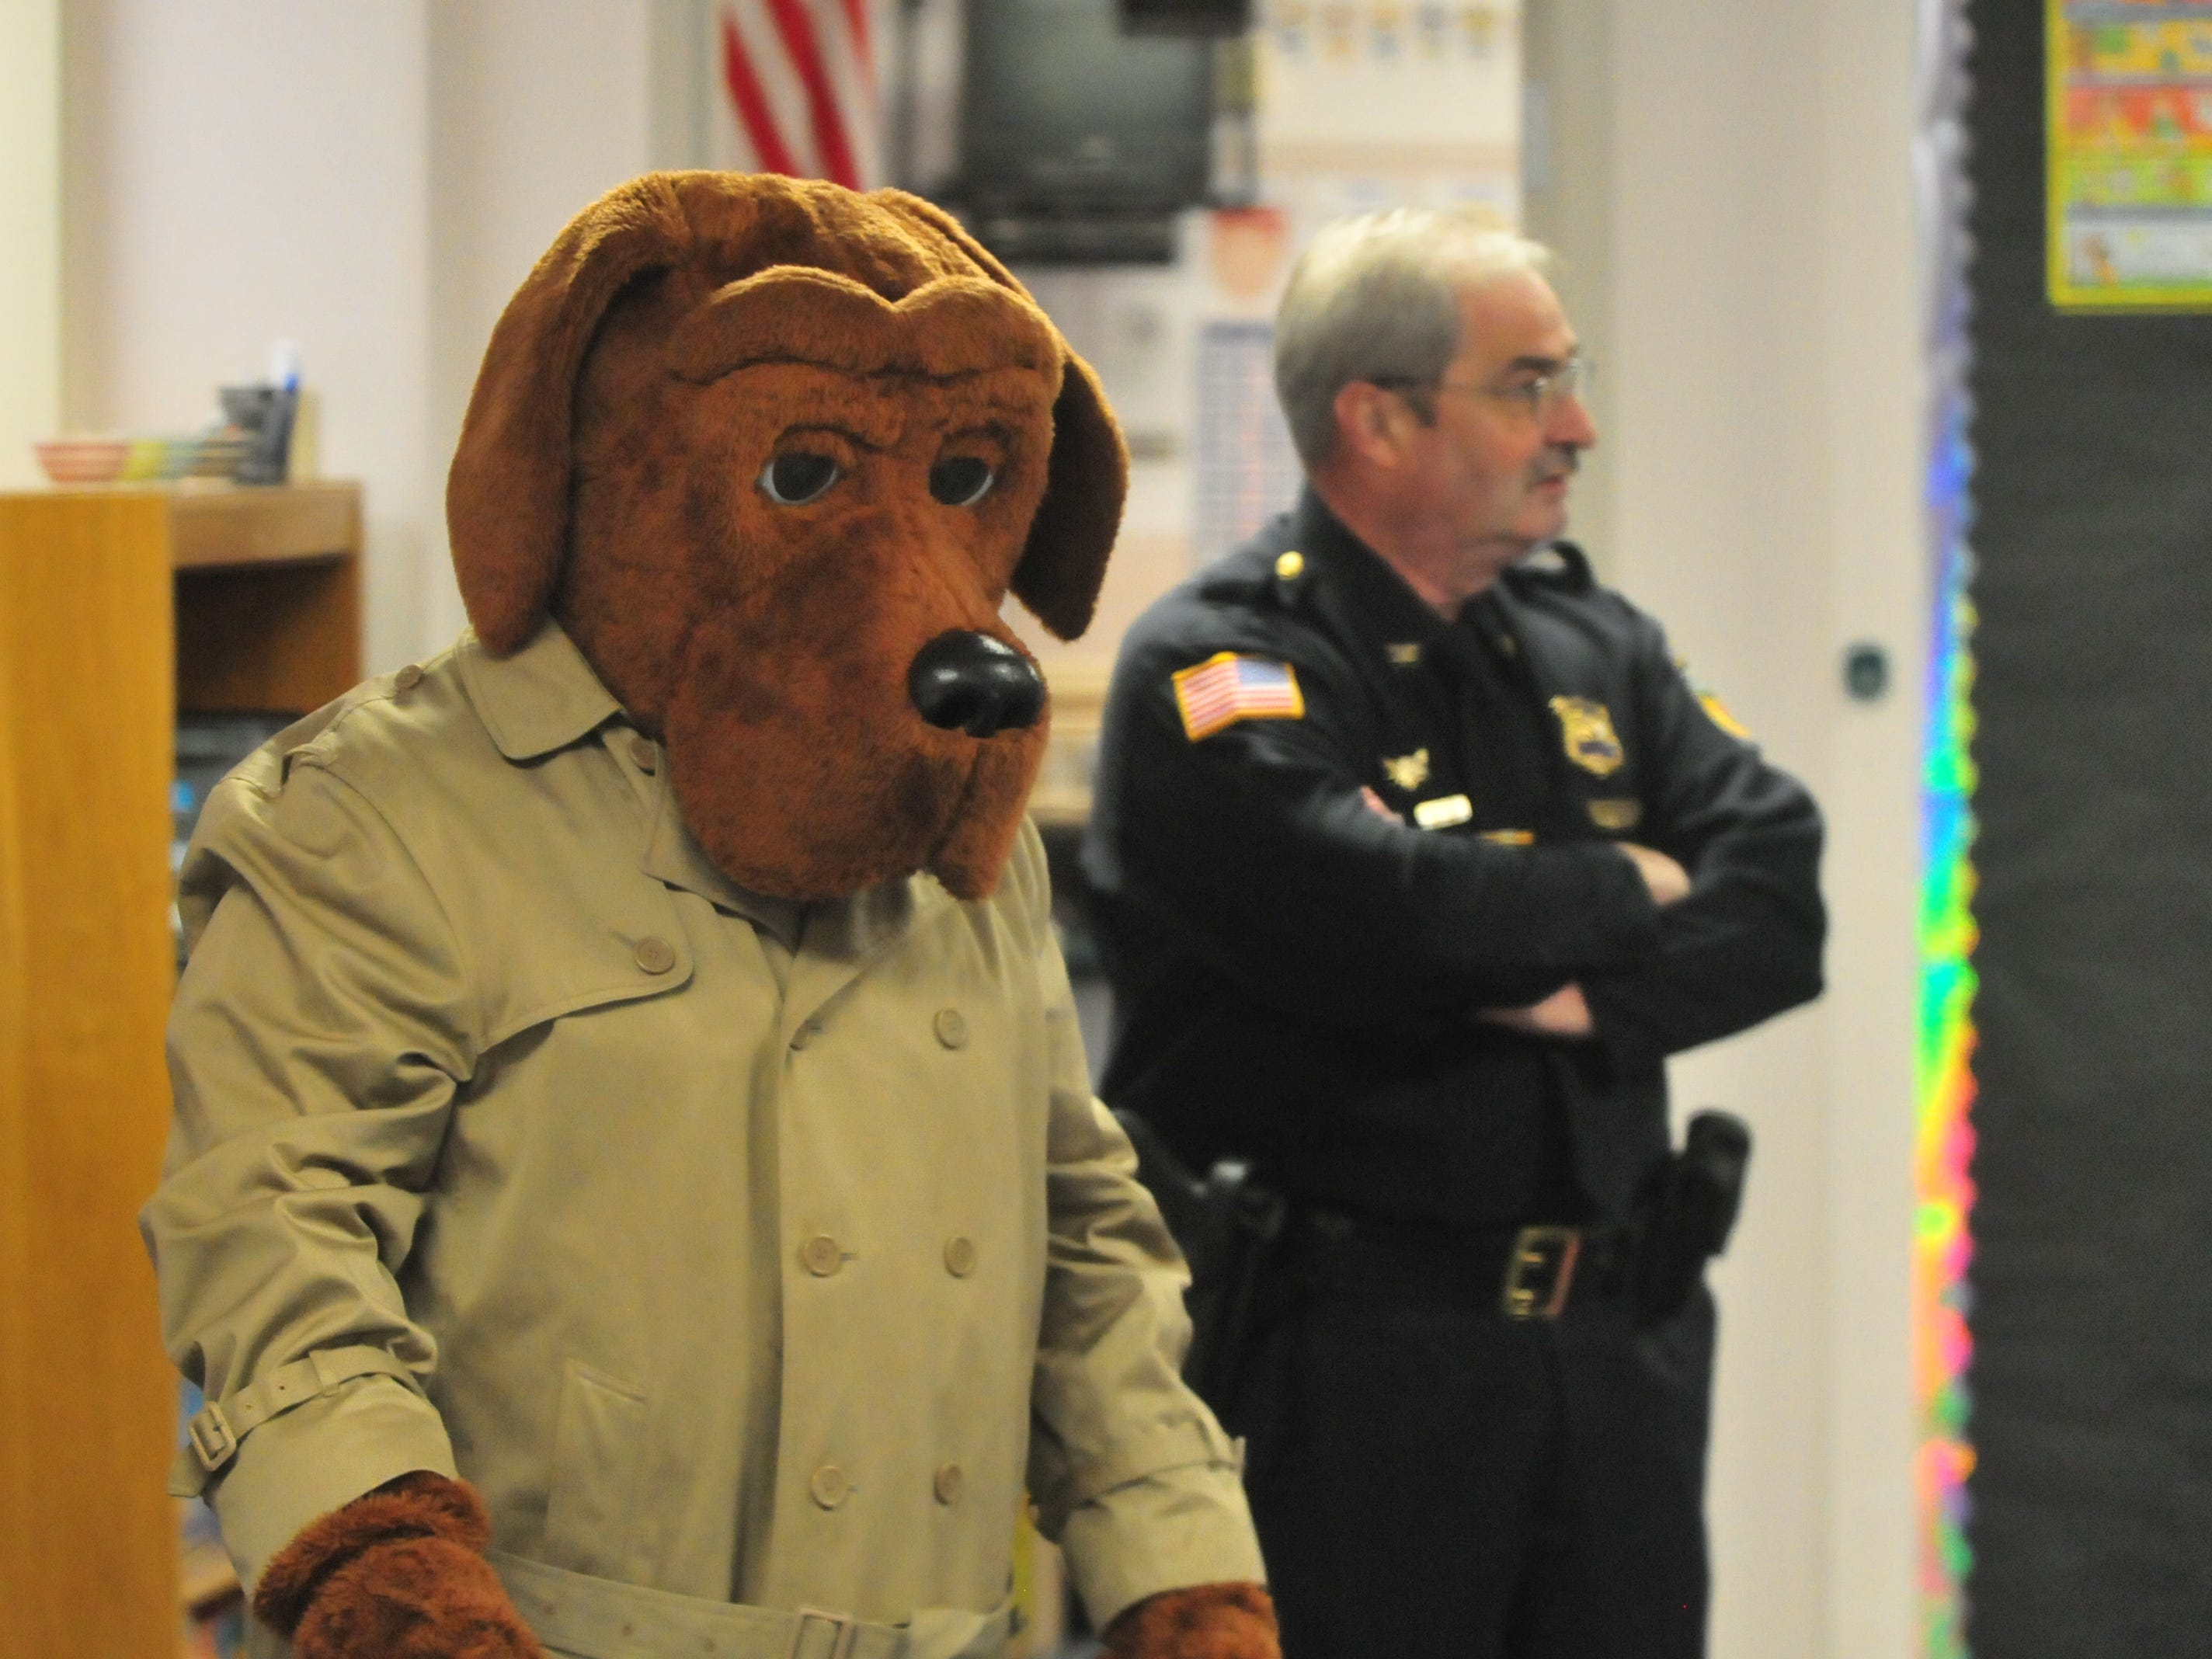 McGruff the Crime Dog and Chief Jim Branum visited a Vaile Elementary kindergarten class Tuesday.